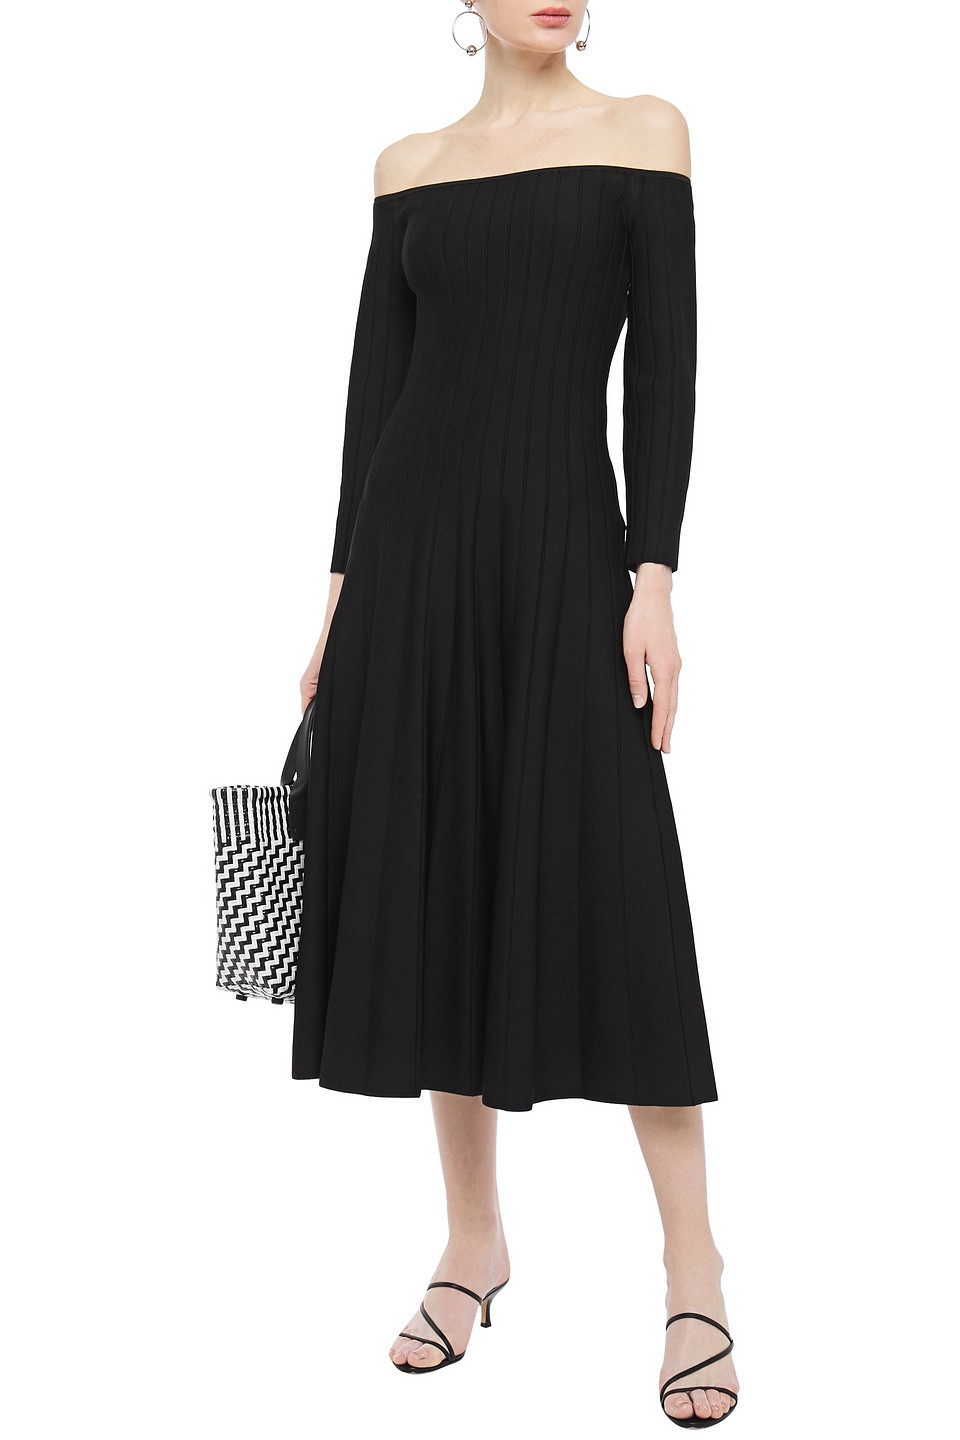 Casasola | Casasola Woman Off-the-shoulder Ribbed Stretch-knit Midi Dress Black | Clouty